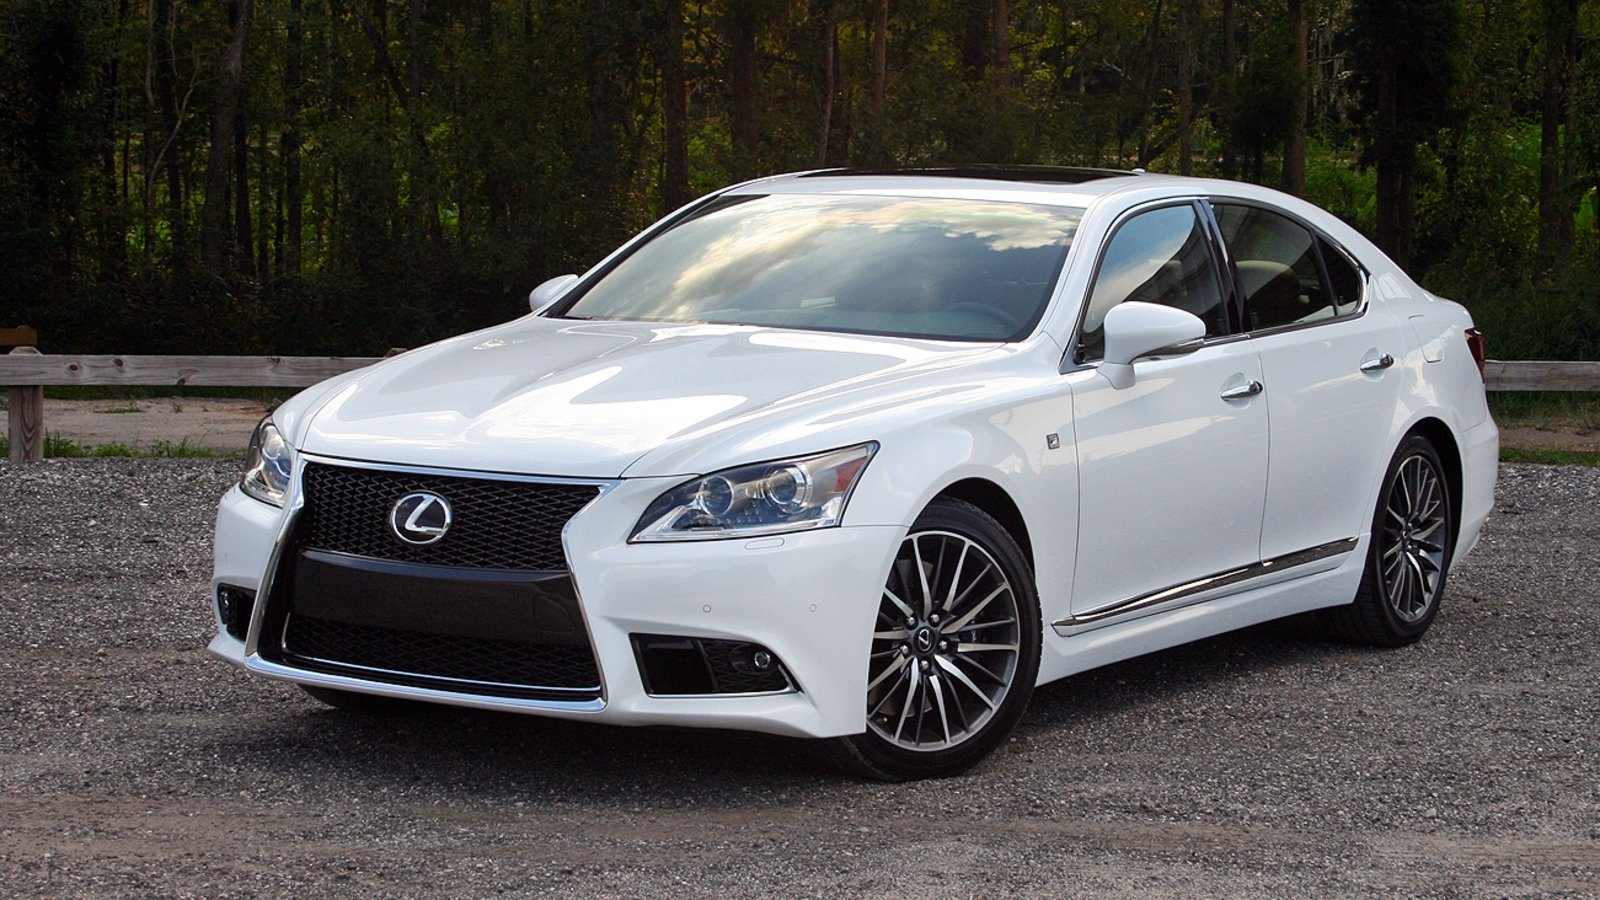 2015 Lexus Ls460 F Sport Driven Review Top Speed